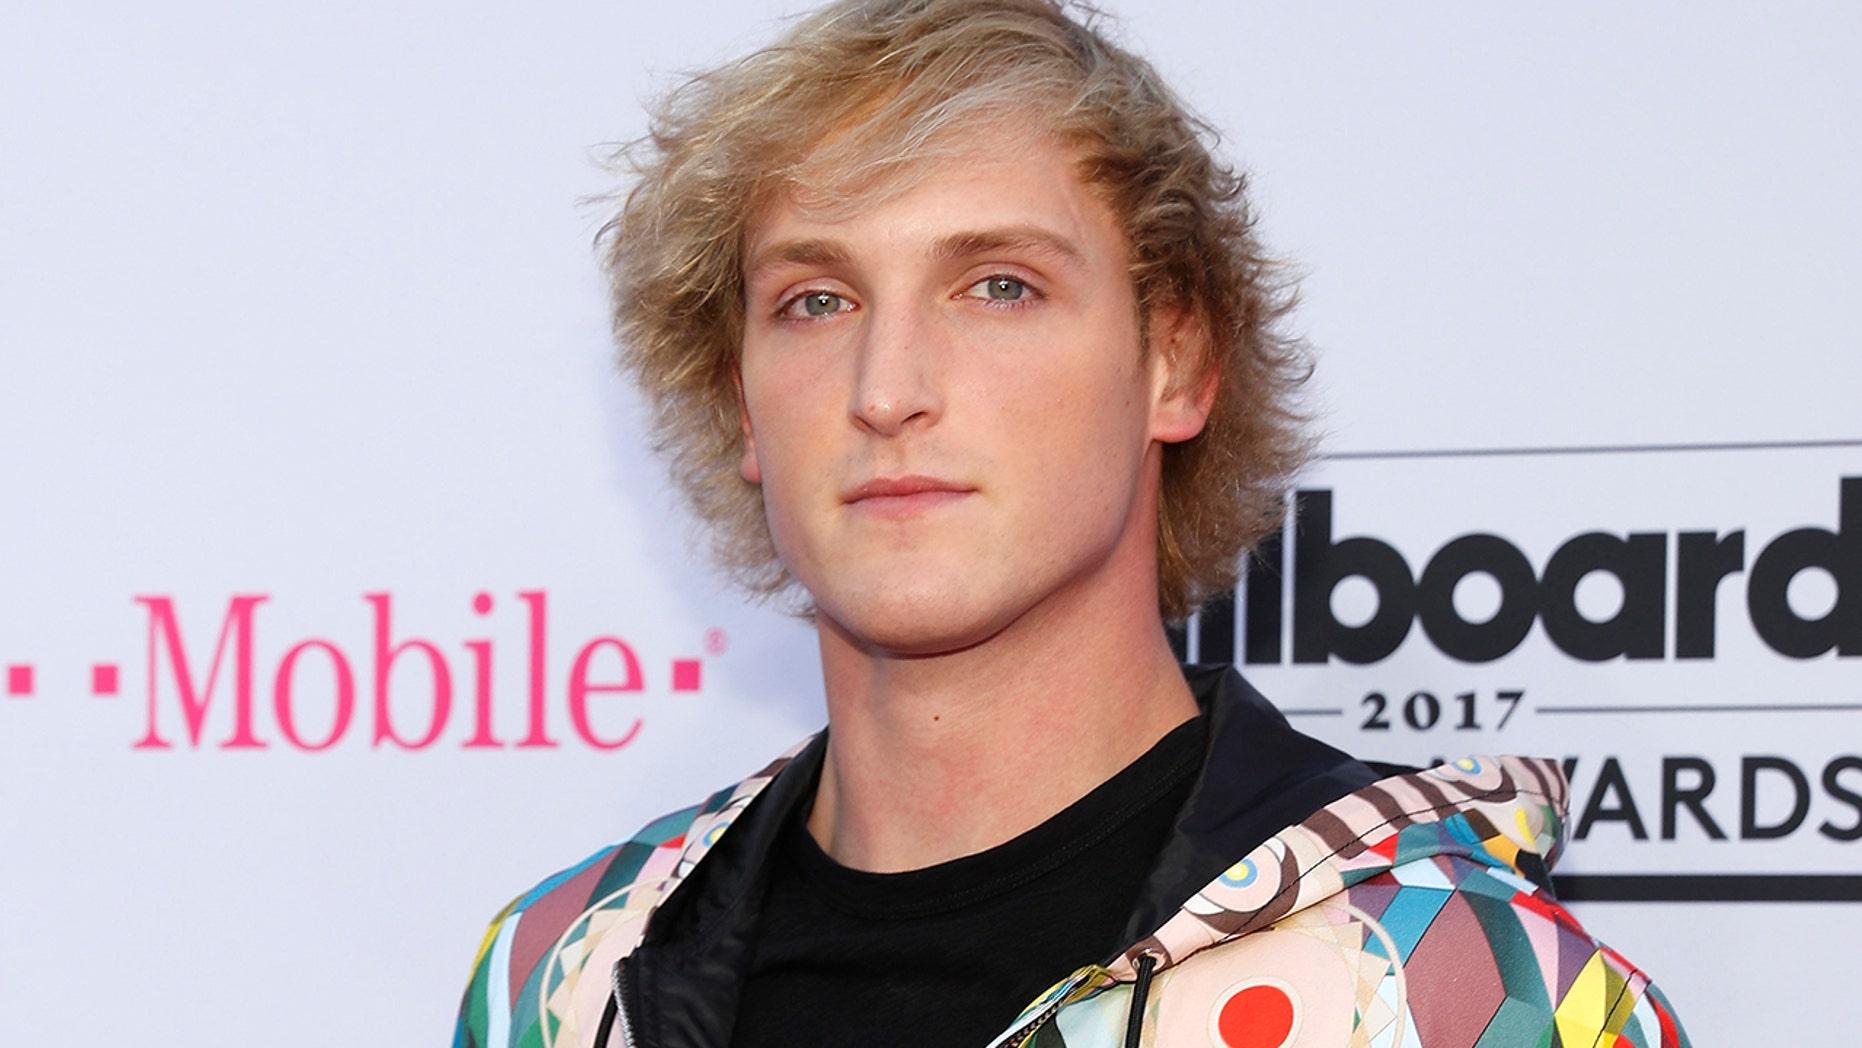 YouTube faced a backlash after Logan Paul, above, uploaded a video depicting a dead body in Japan.